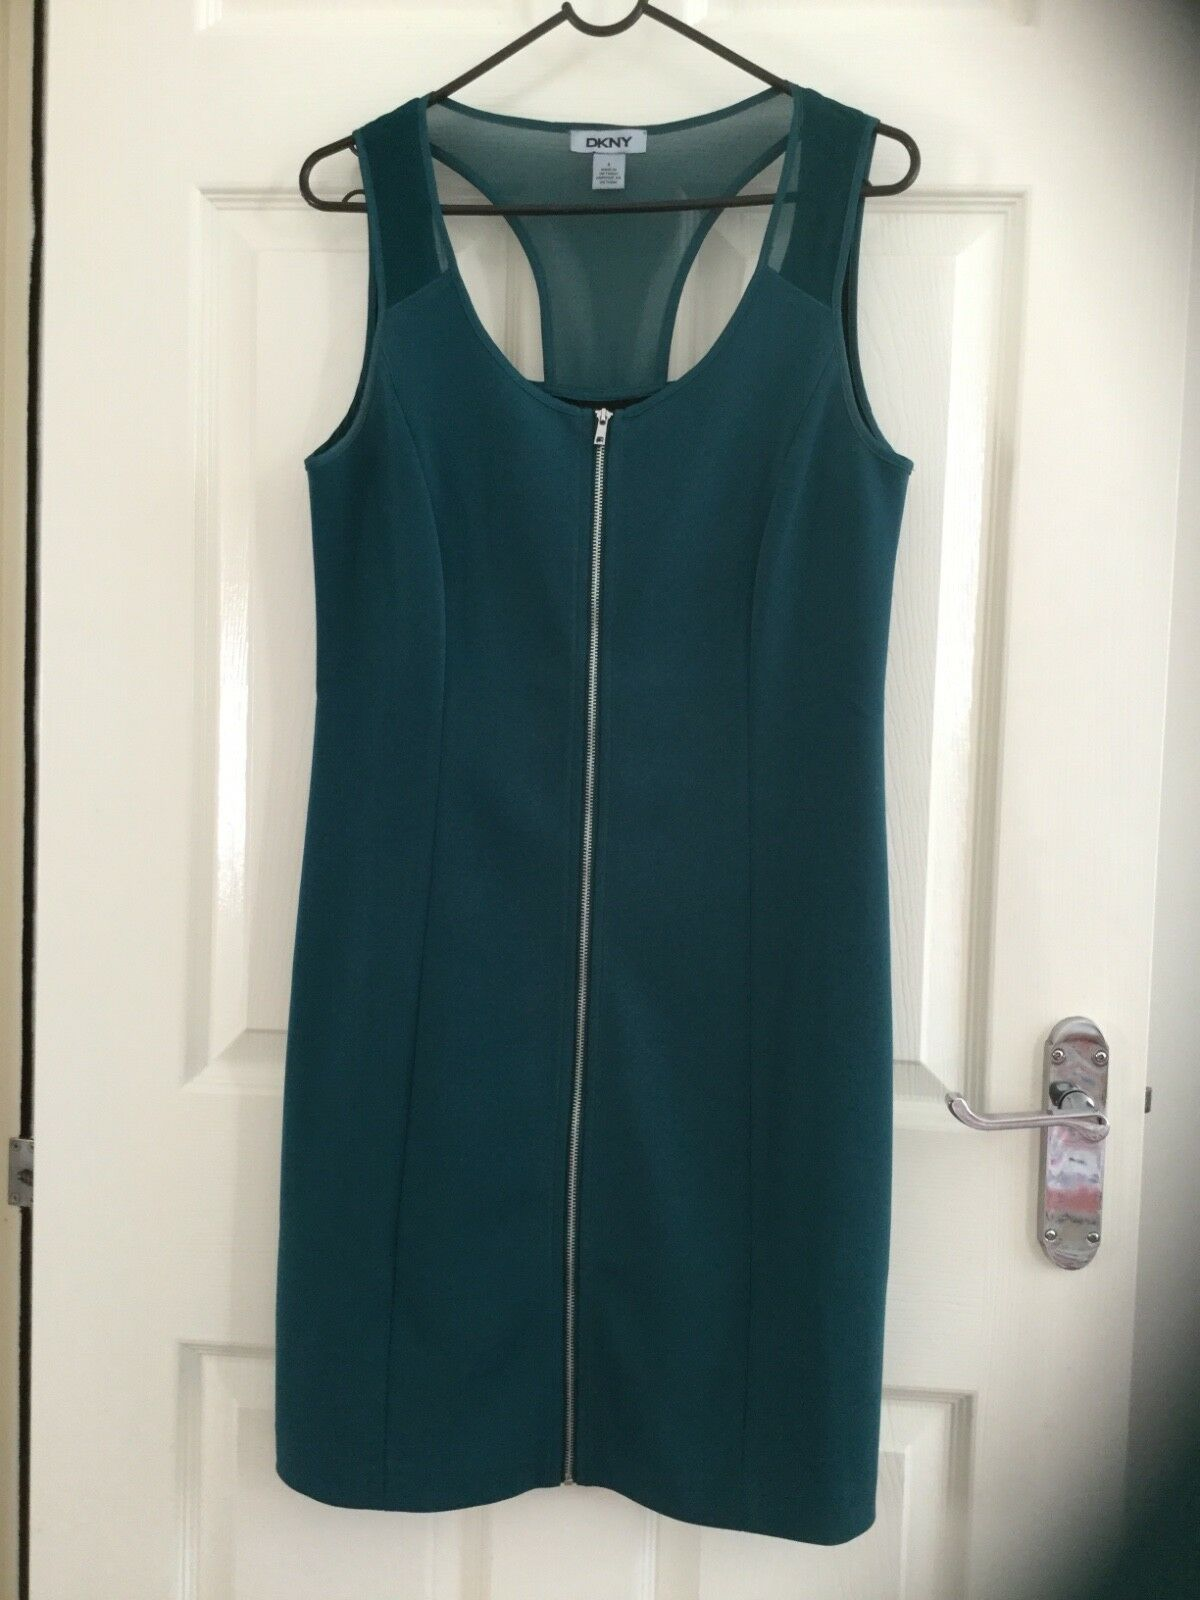 DKNY woman dress green size 4 size used